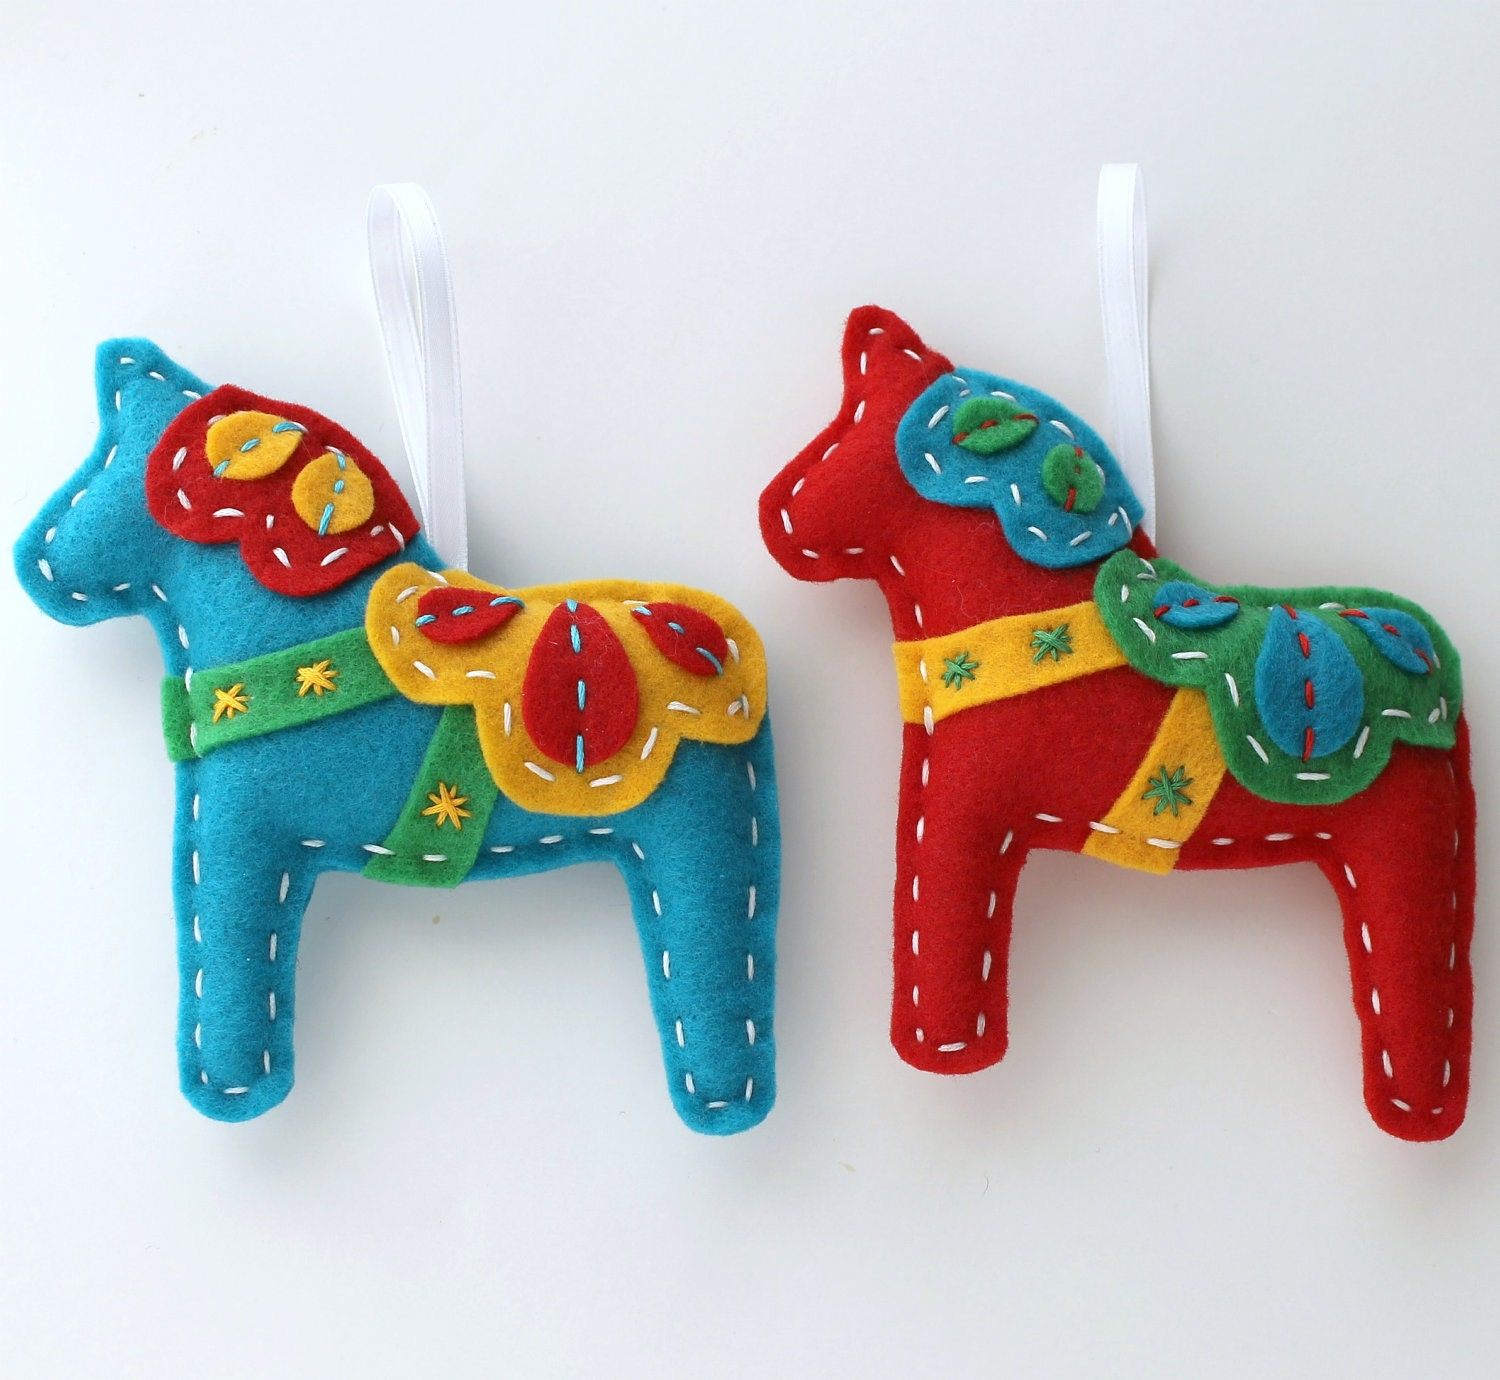 Christmas Tree Shaped Ornaments Are Handmade From 100 Recycled Eco Friendly Felt Hand: Dala Horse Ornaments. Set Of 2. Red And Teal. Christmas